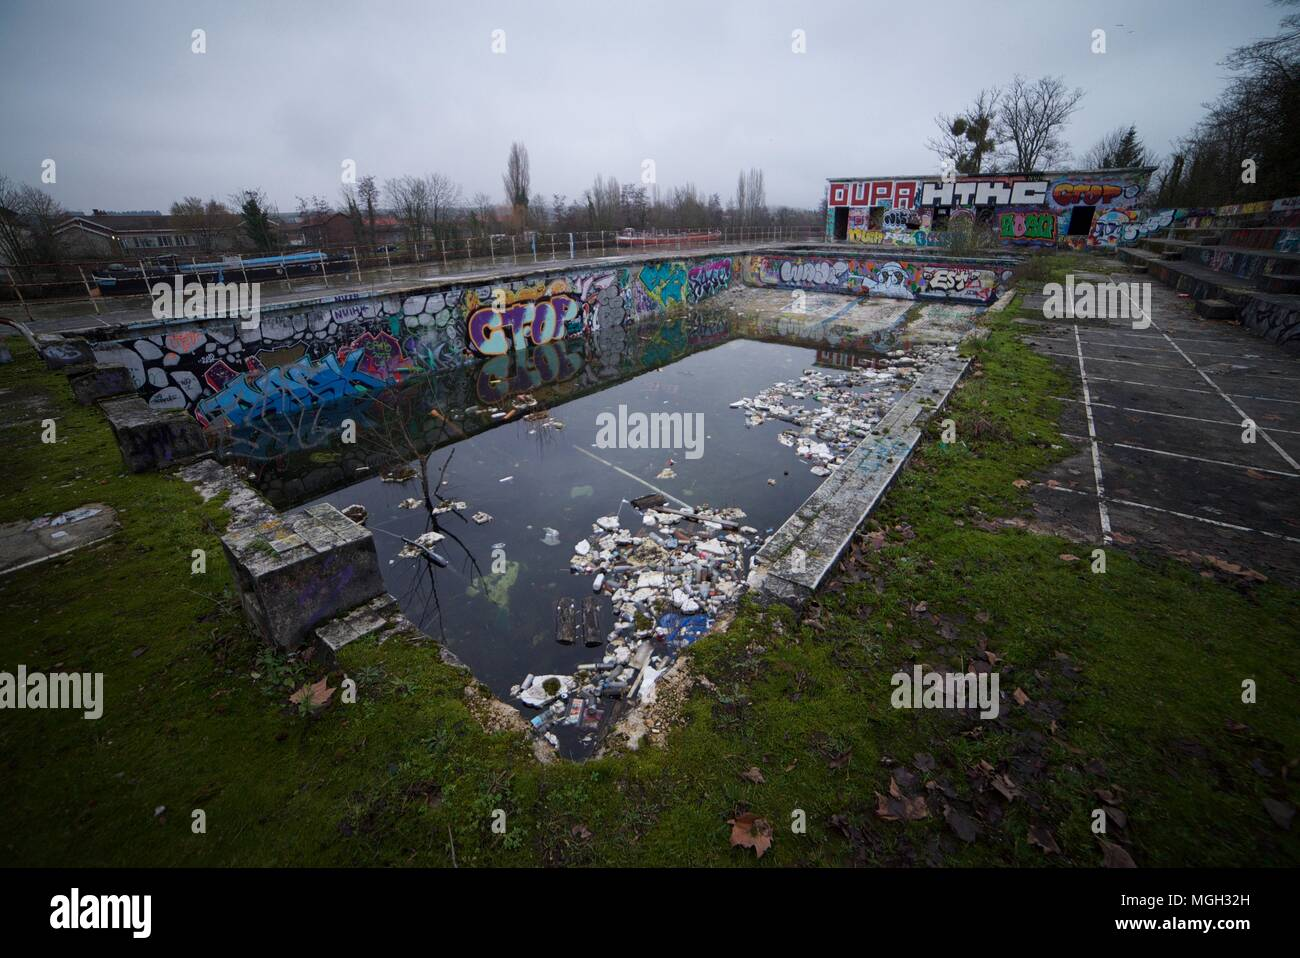 Abandoned Swimming Pools High Resolution Stock Photography And Images Alamy